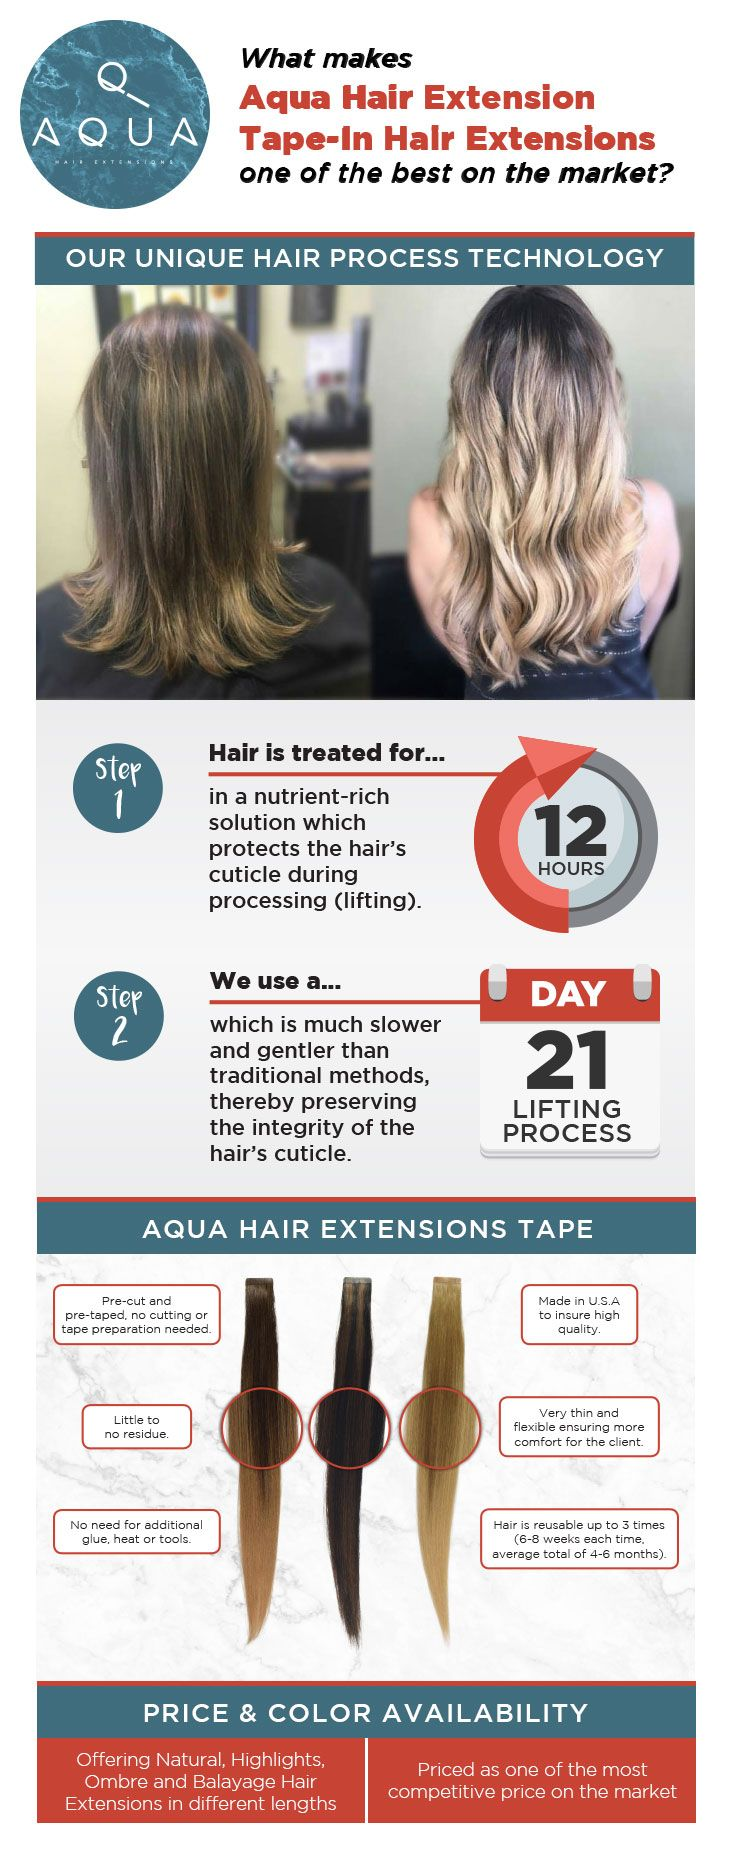 What Make Aqua Tape In Hair Extensions One Of The Best In The Market